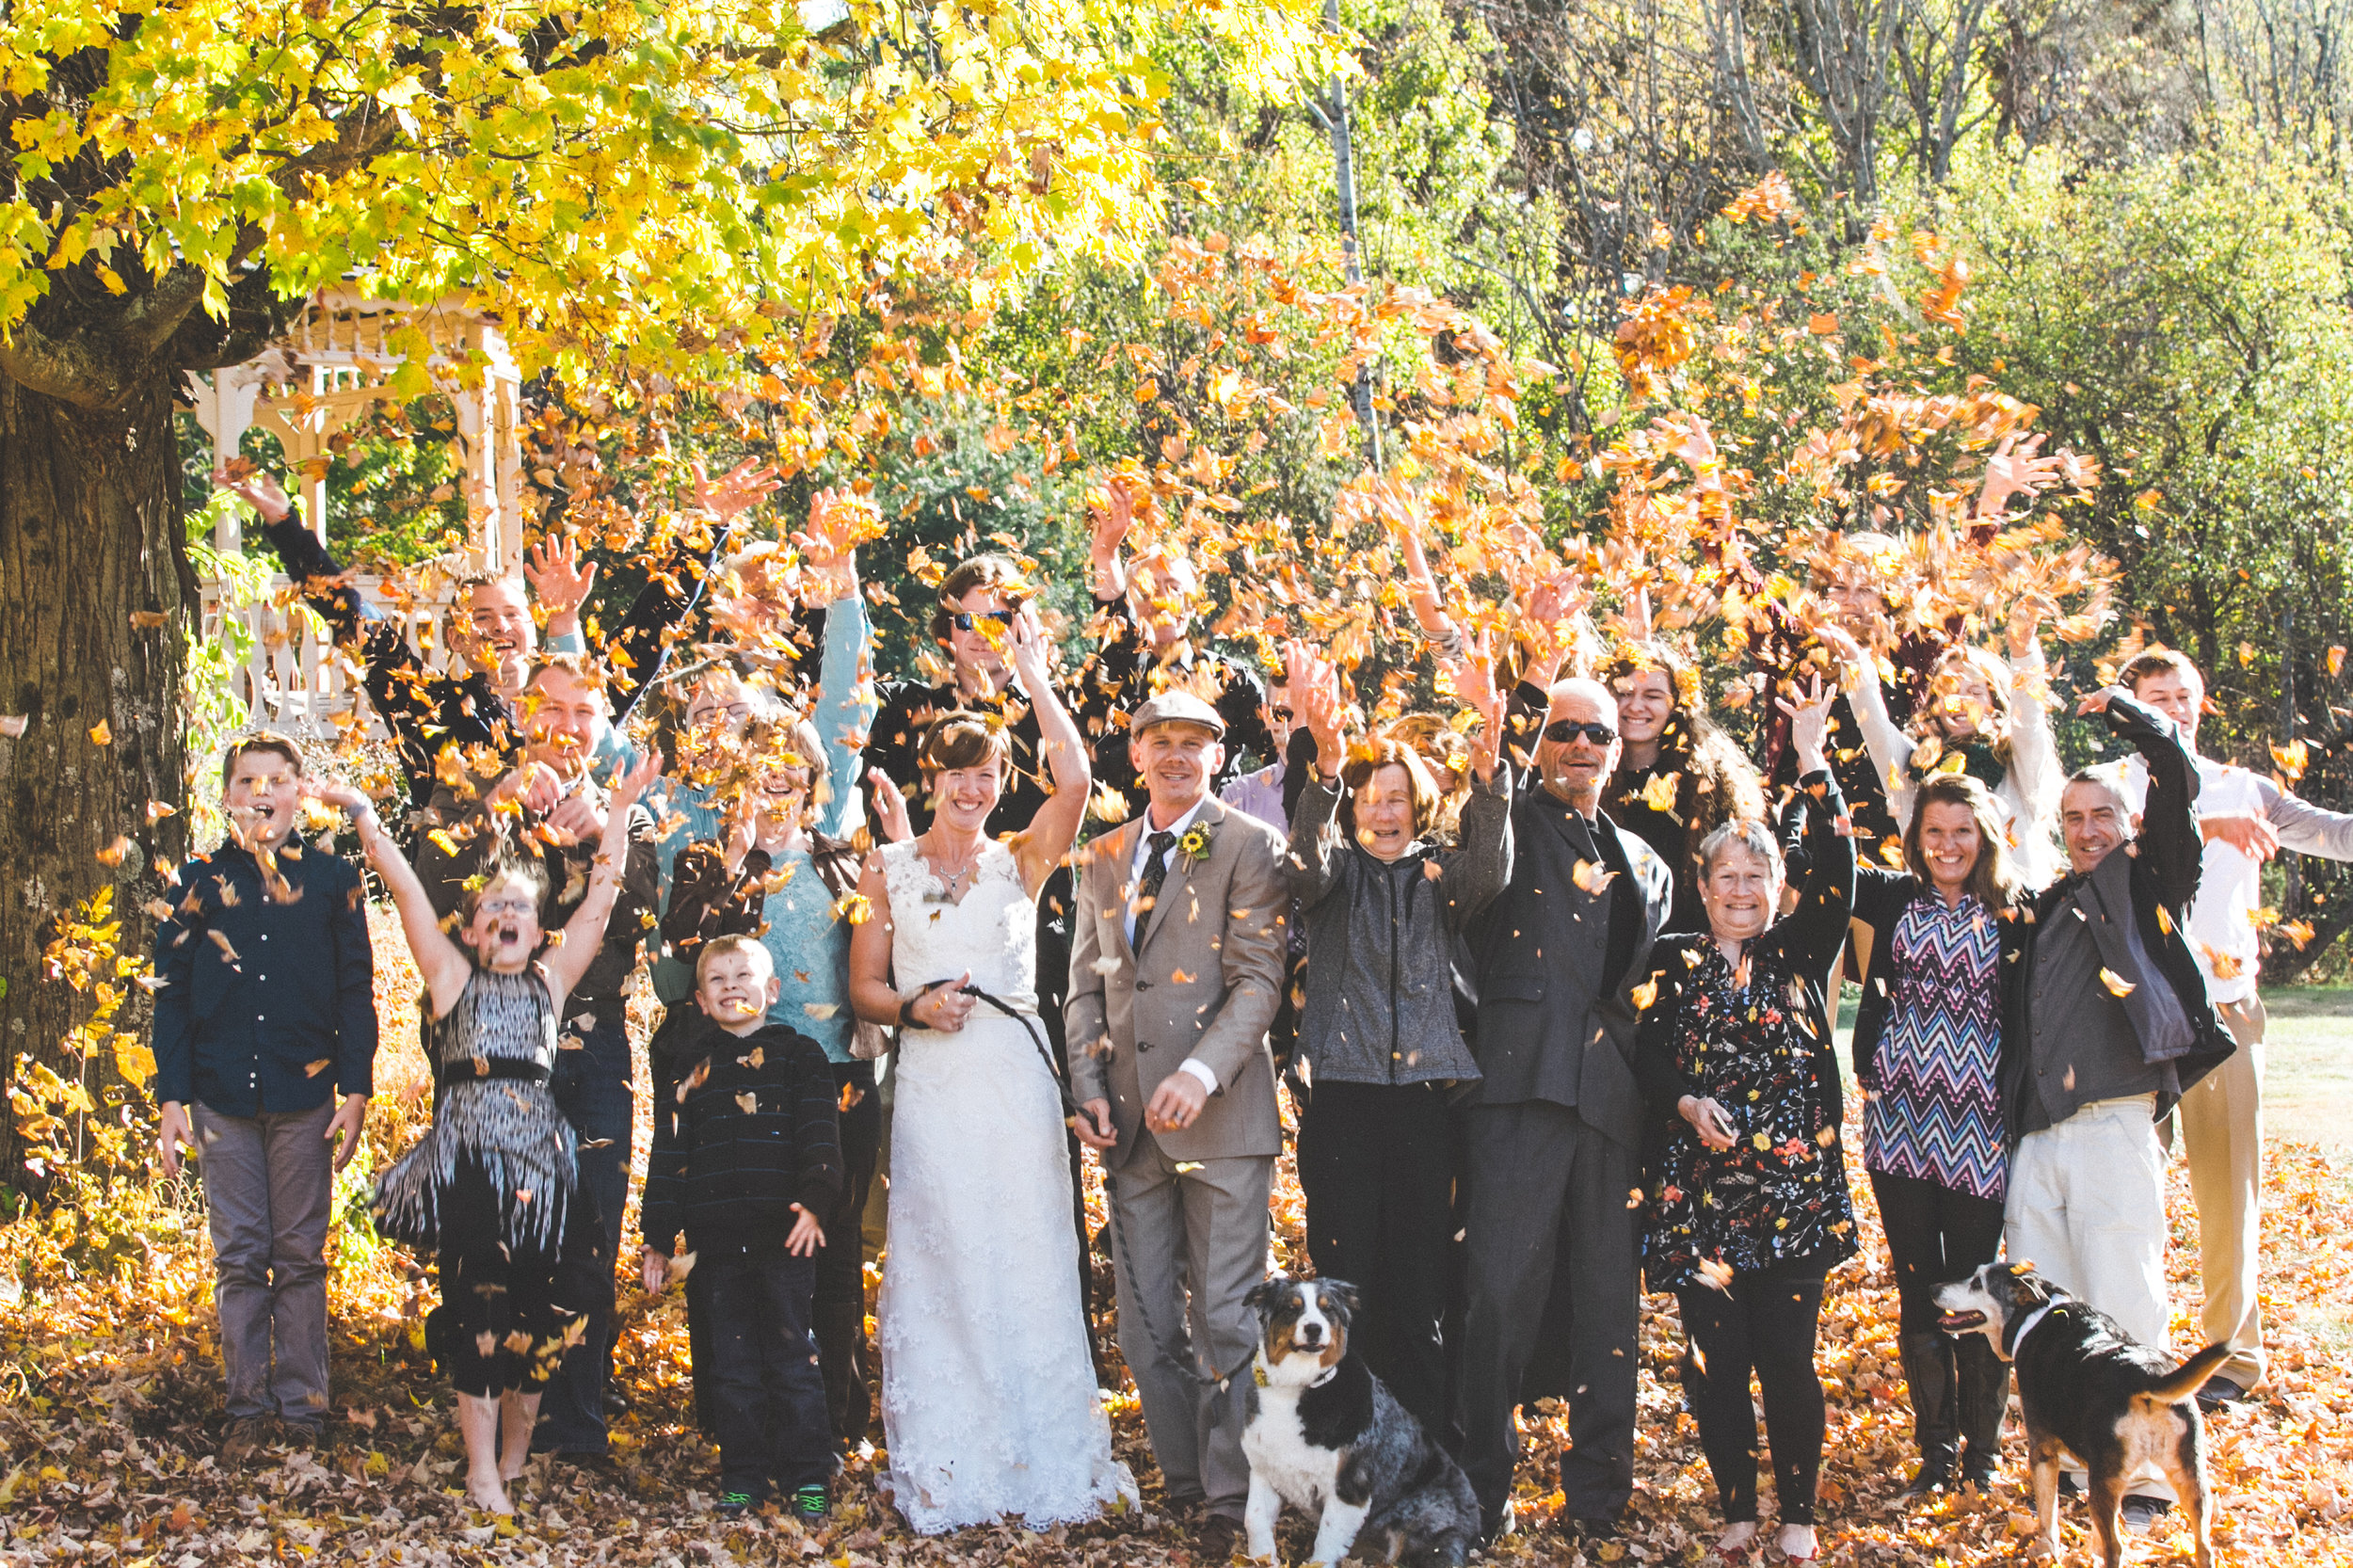 In this fun photo, Elissa and Scott are with their family and friends throwing leaves up into the air for a celebratory feel.